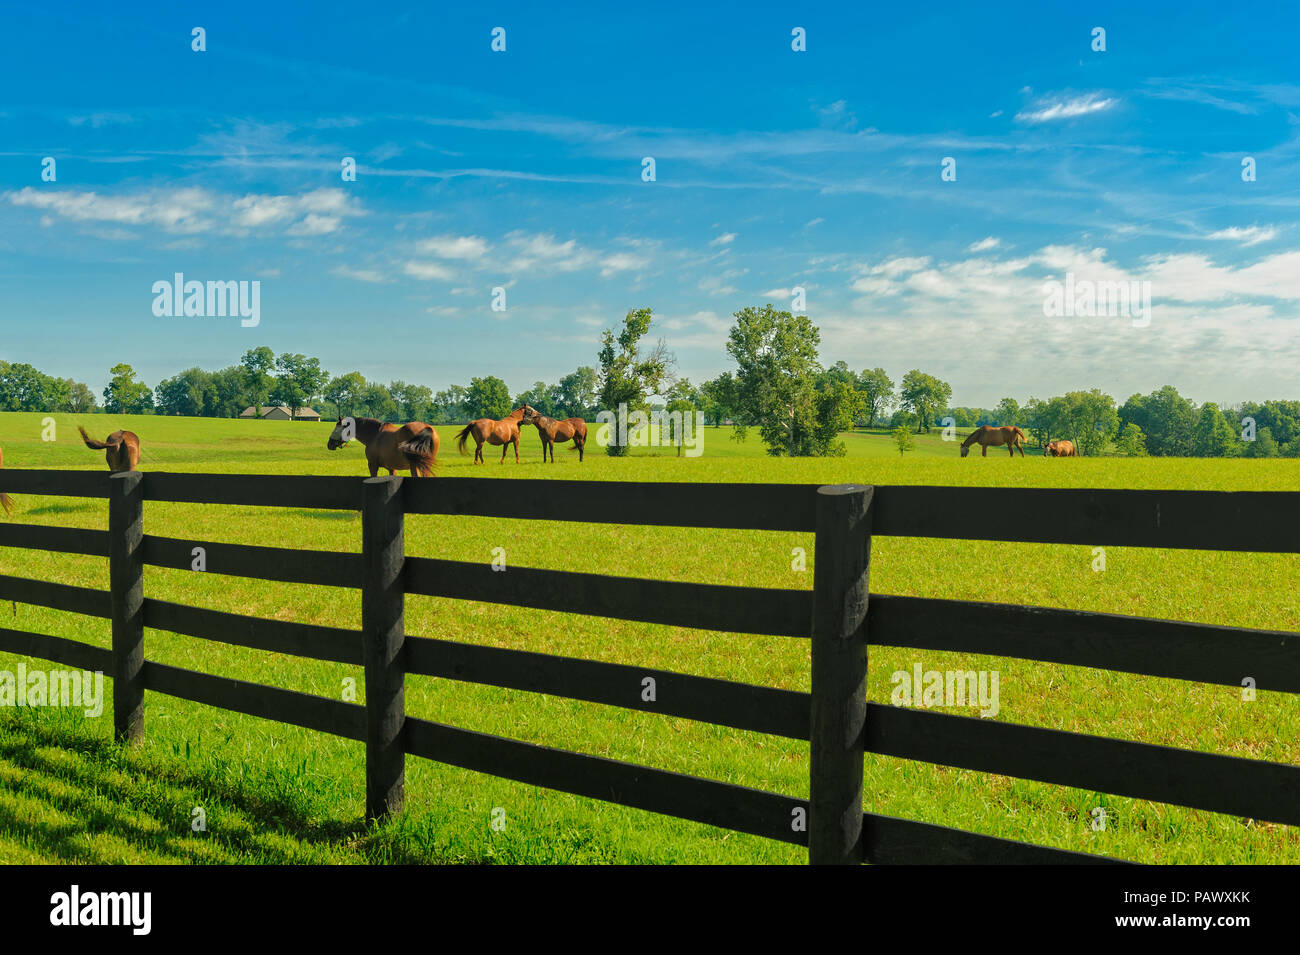 Horses on a Kentucky horse farm - Stock Image